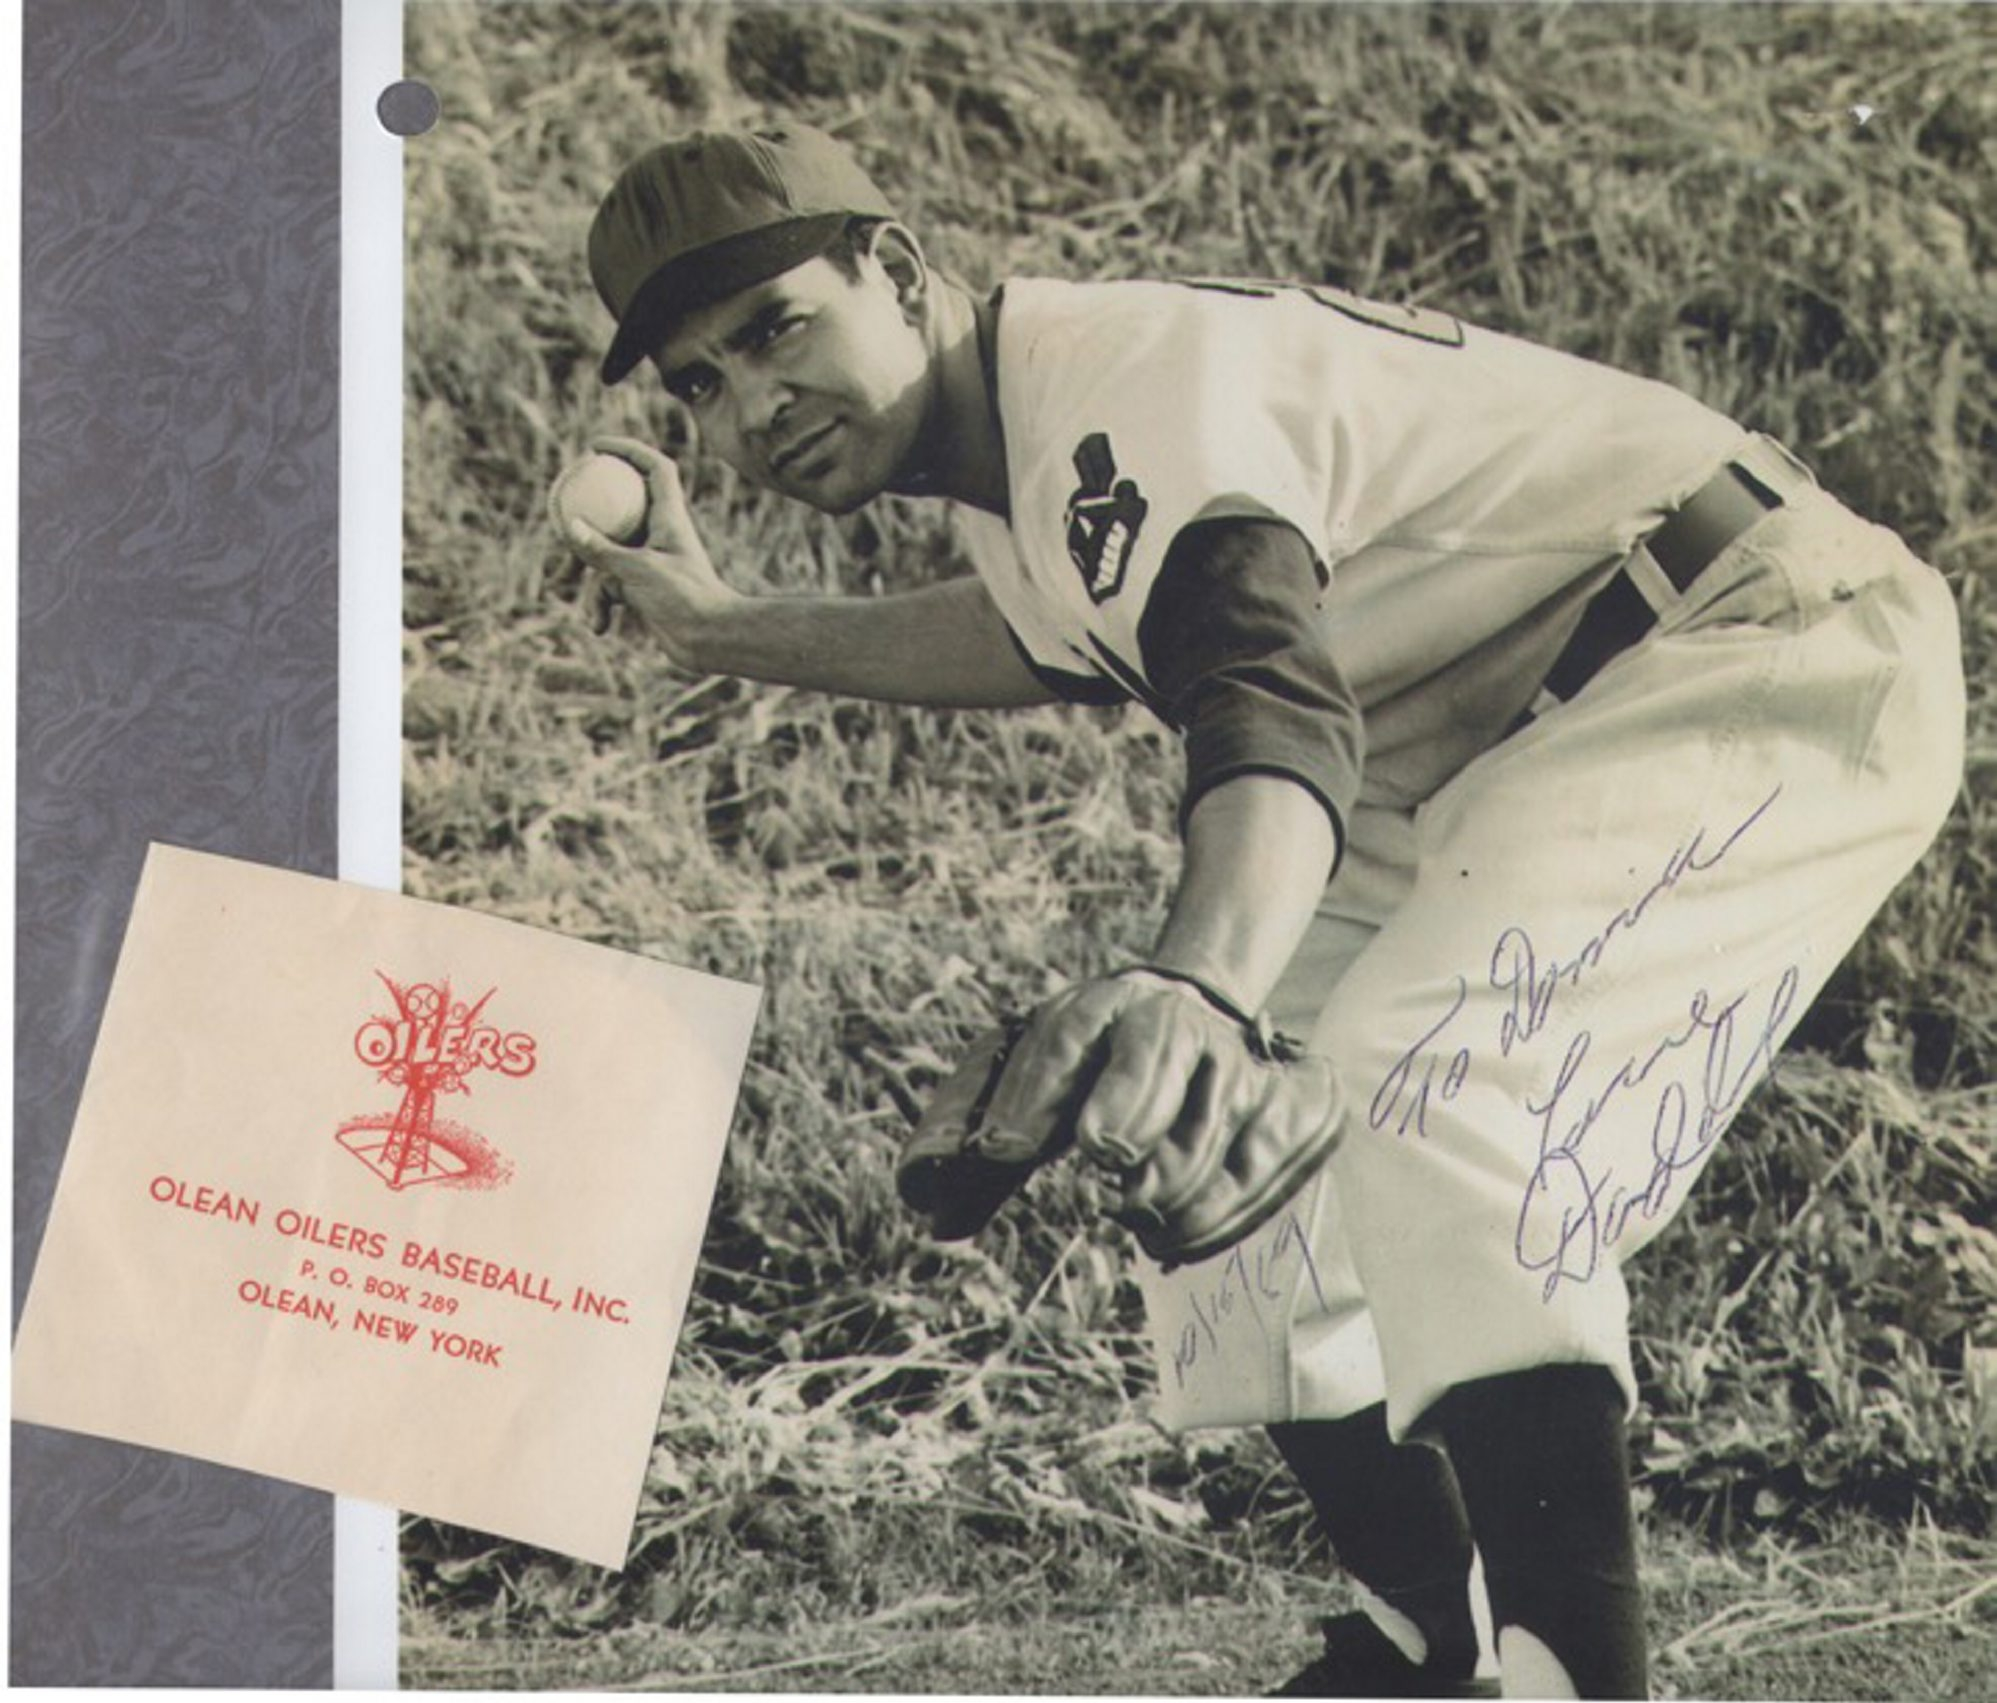 After a standout career in minor-league baseball, George Daddario worked in promotions and marketing for the Buffalo Bisons and NBA Braves. Daddario died in 2007.